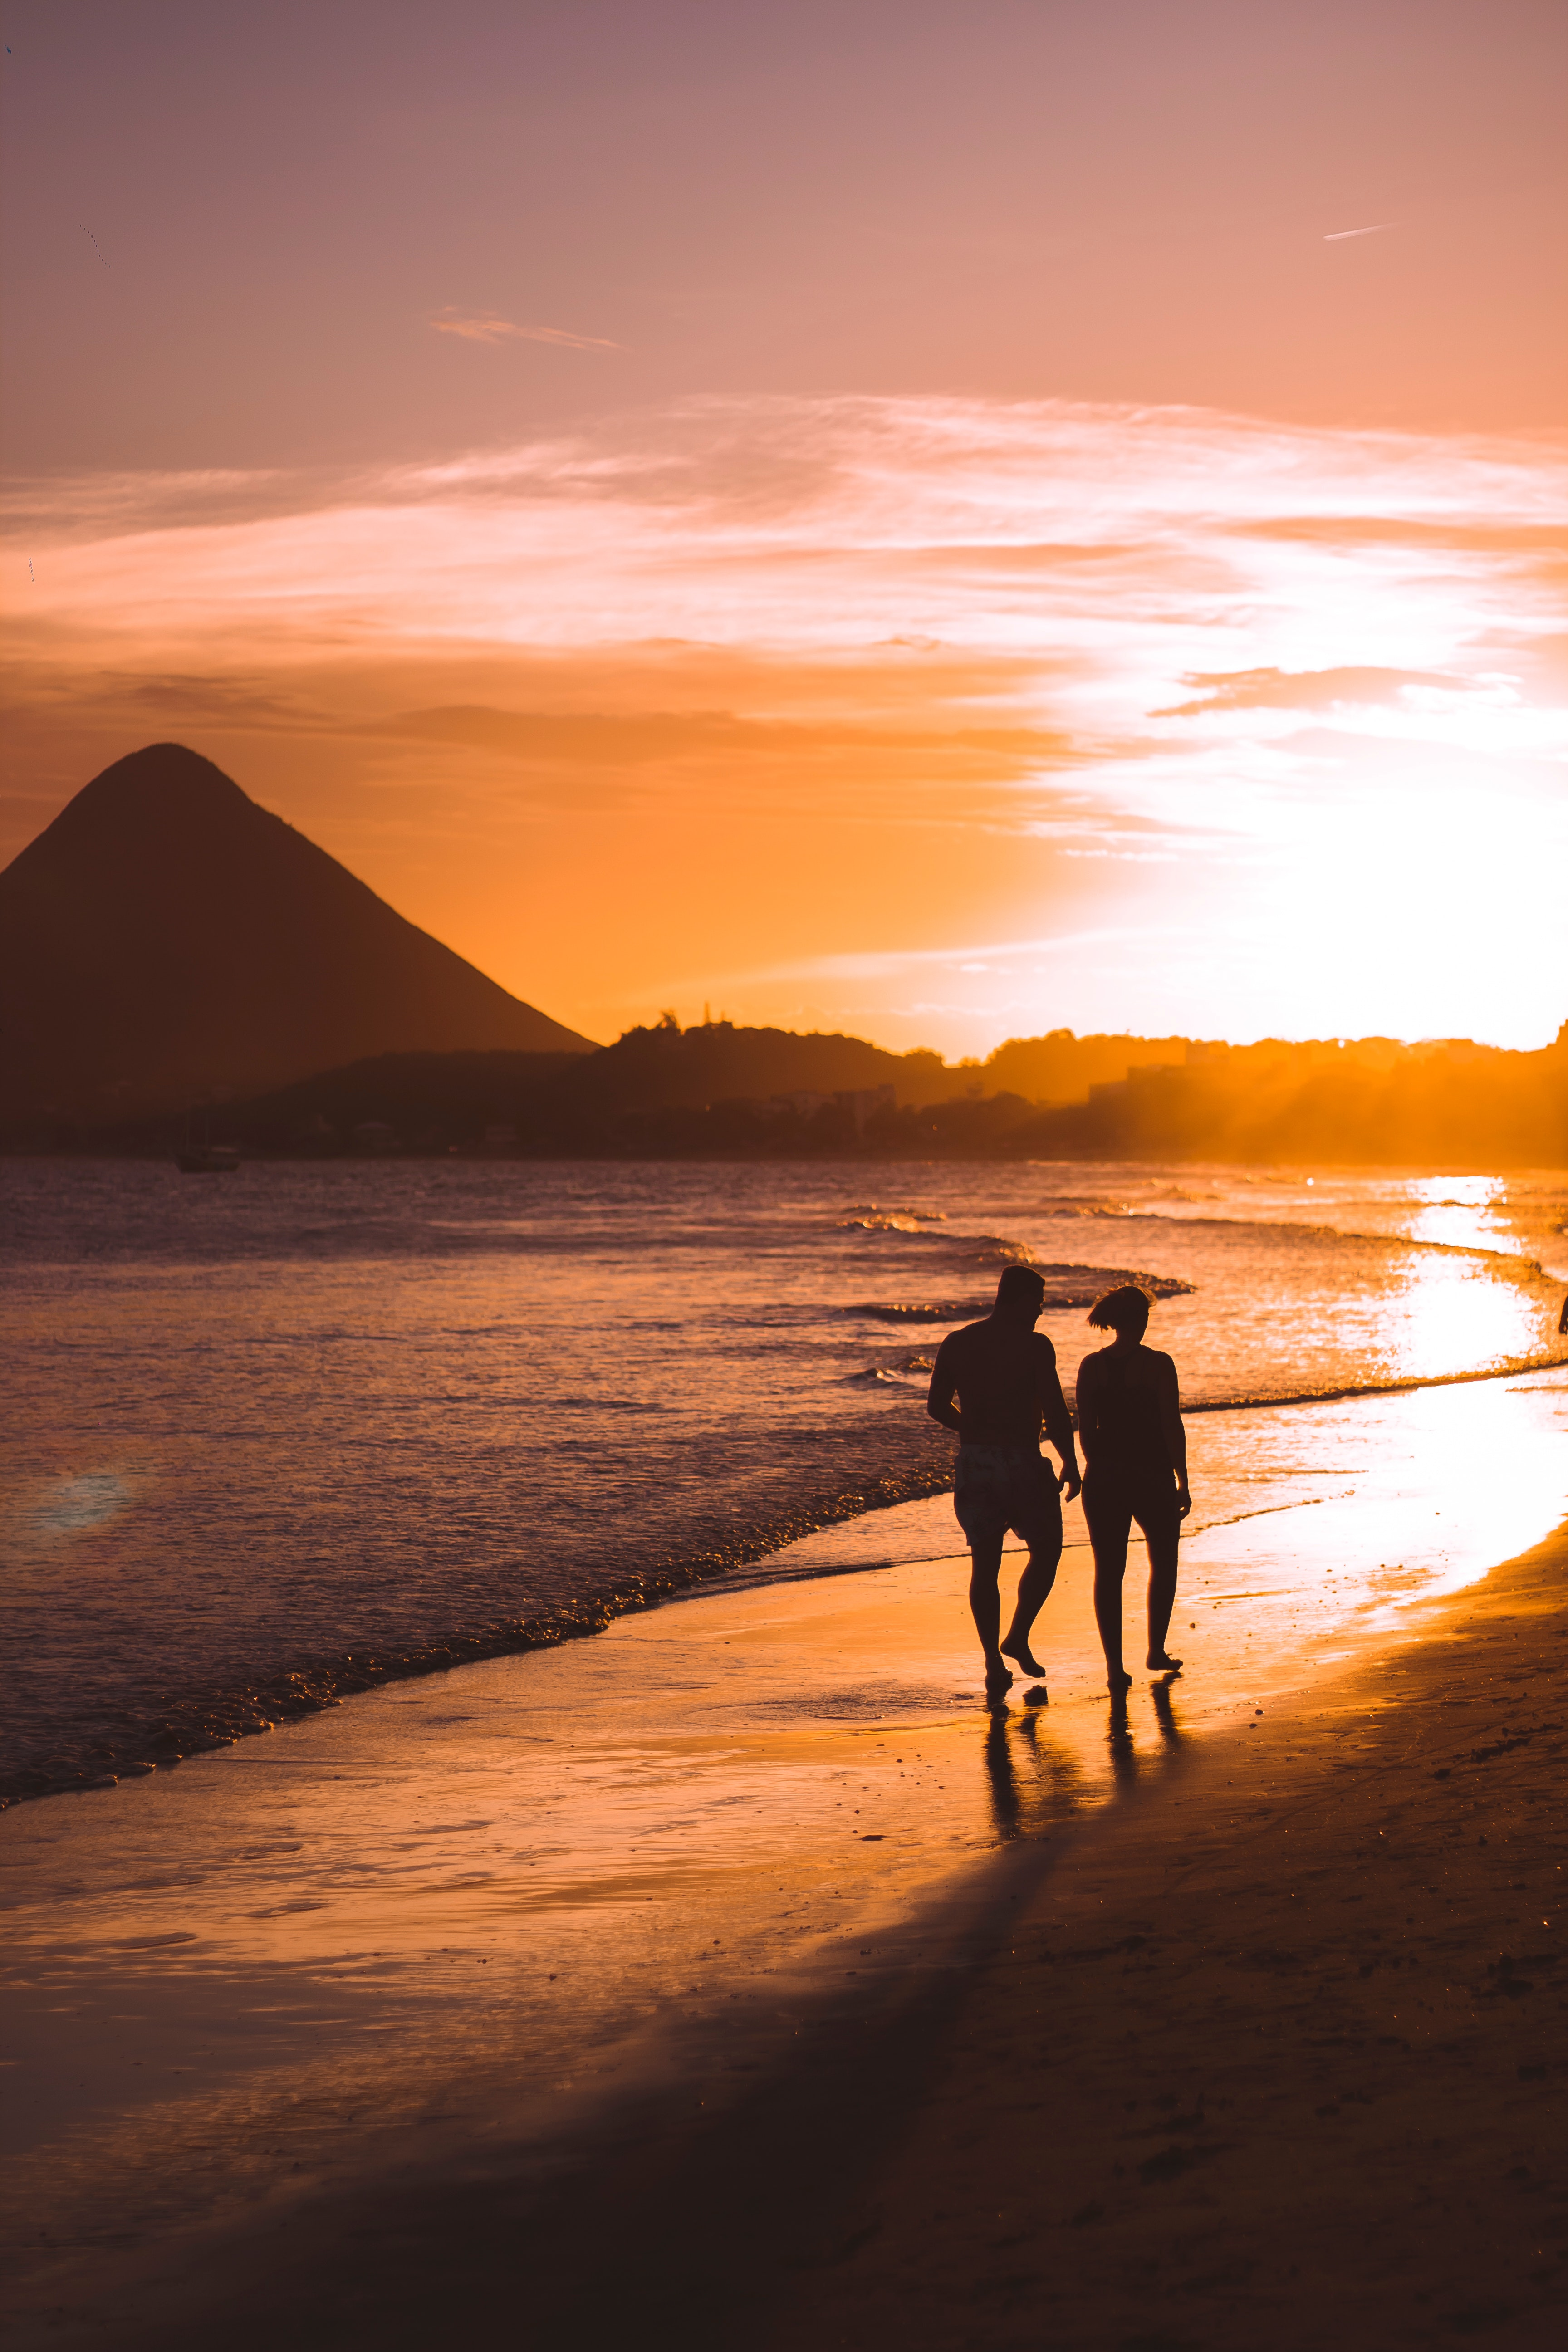 Silhouette of Two People Walking on Beach during Sunset ...